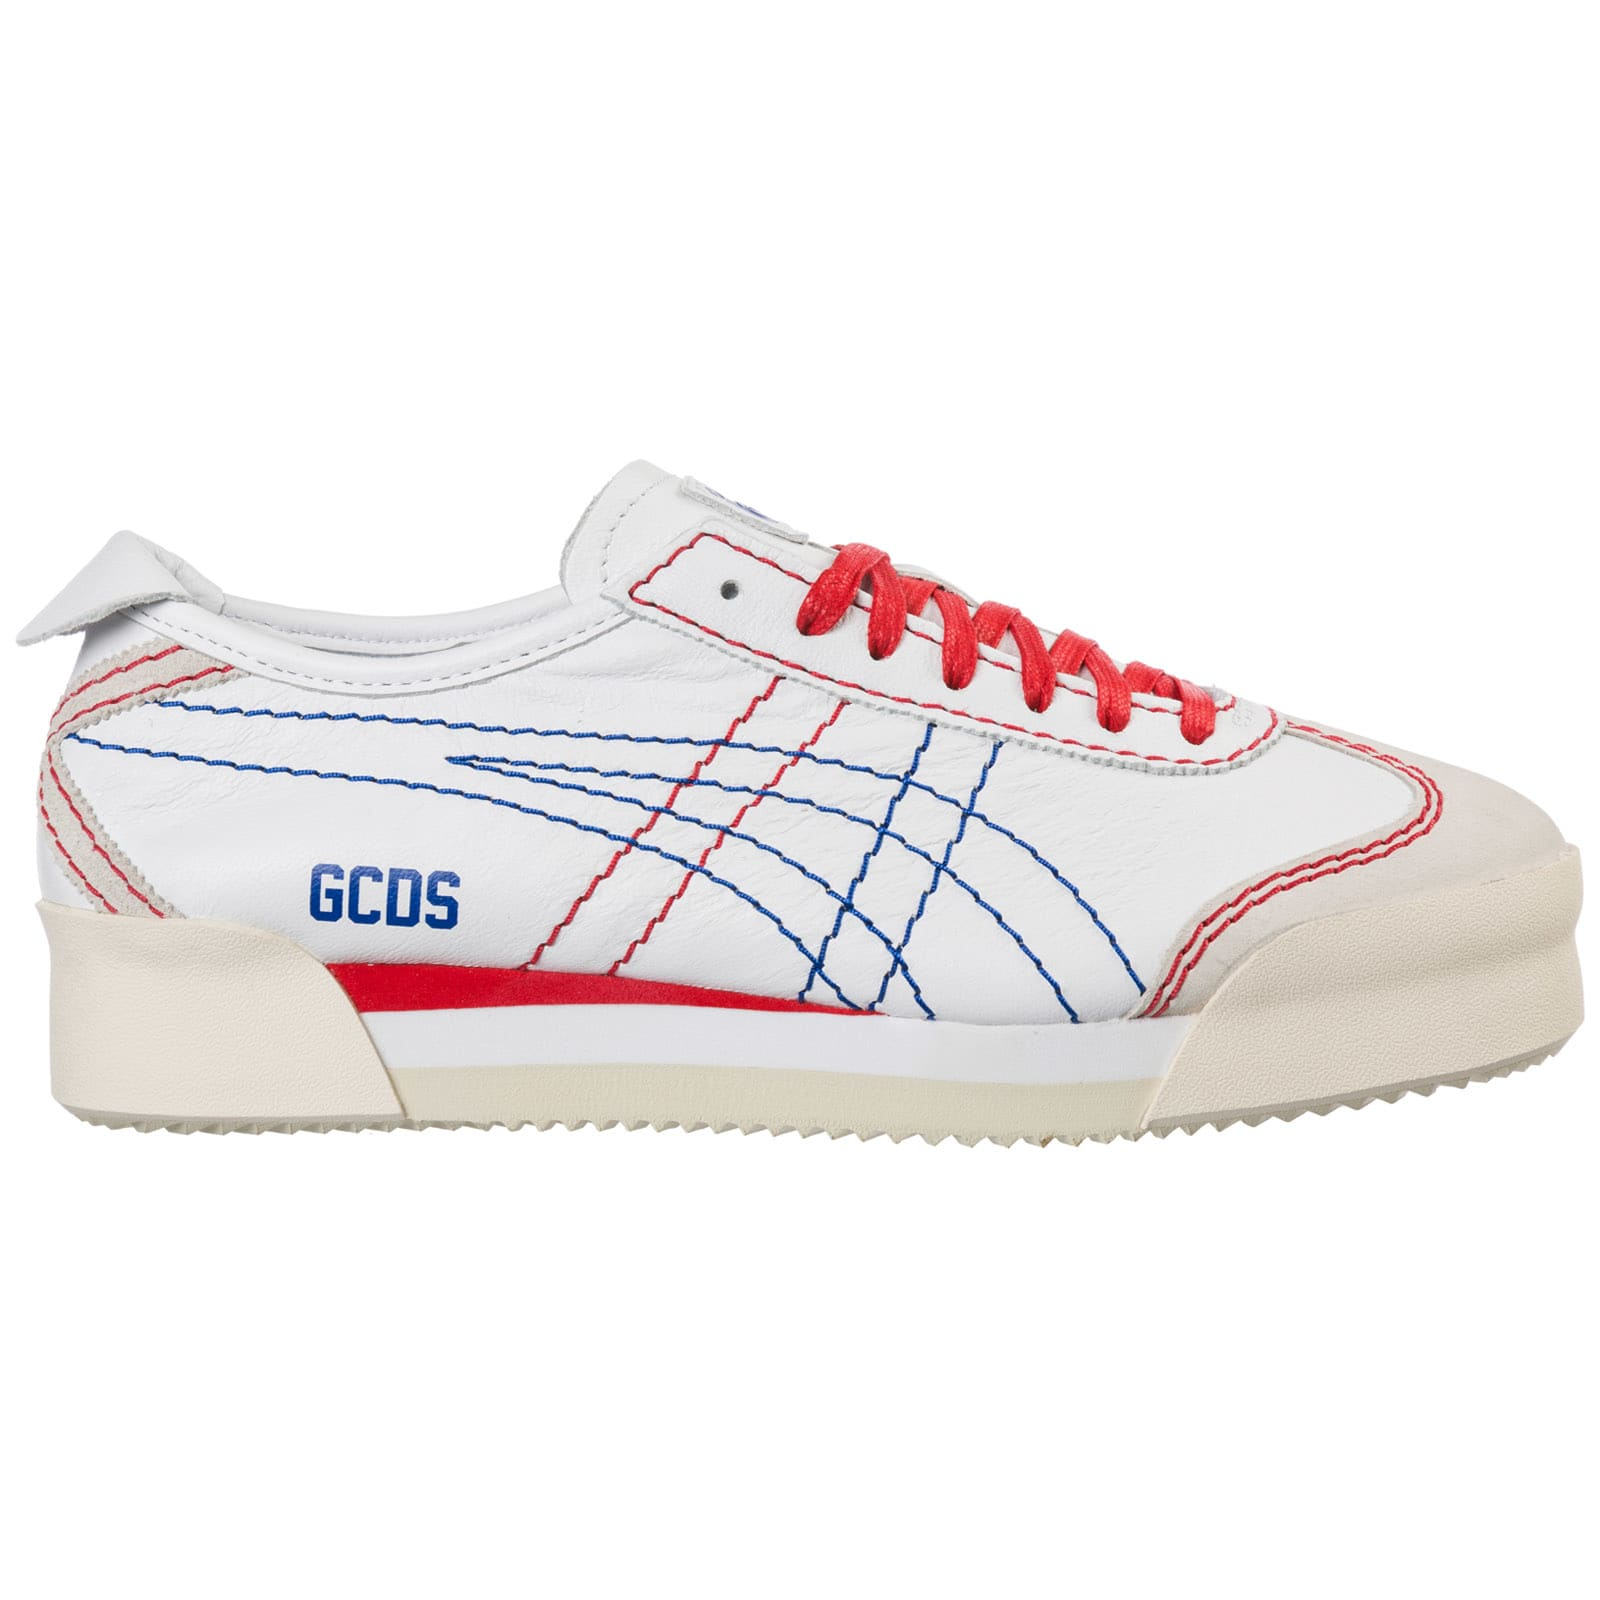 new product 7a32c 1fbd0 GCDS Shoes Leather Trainers Sneakers Onitsuka Tiger Mexico